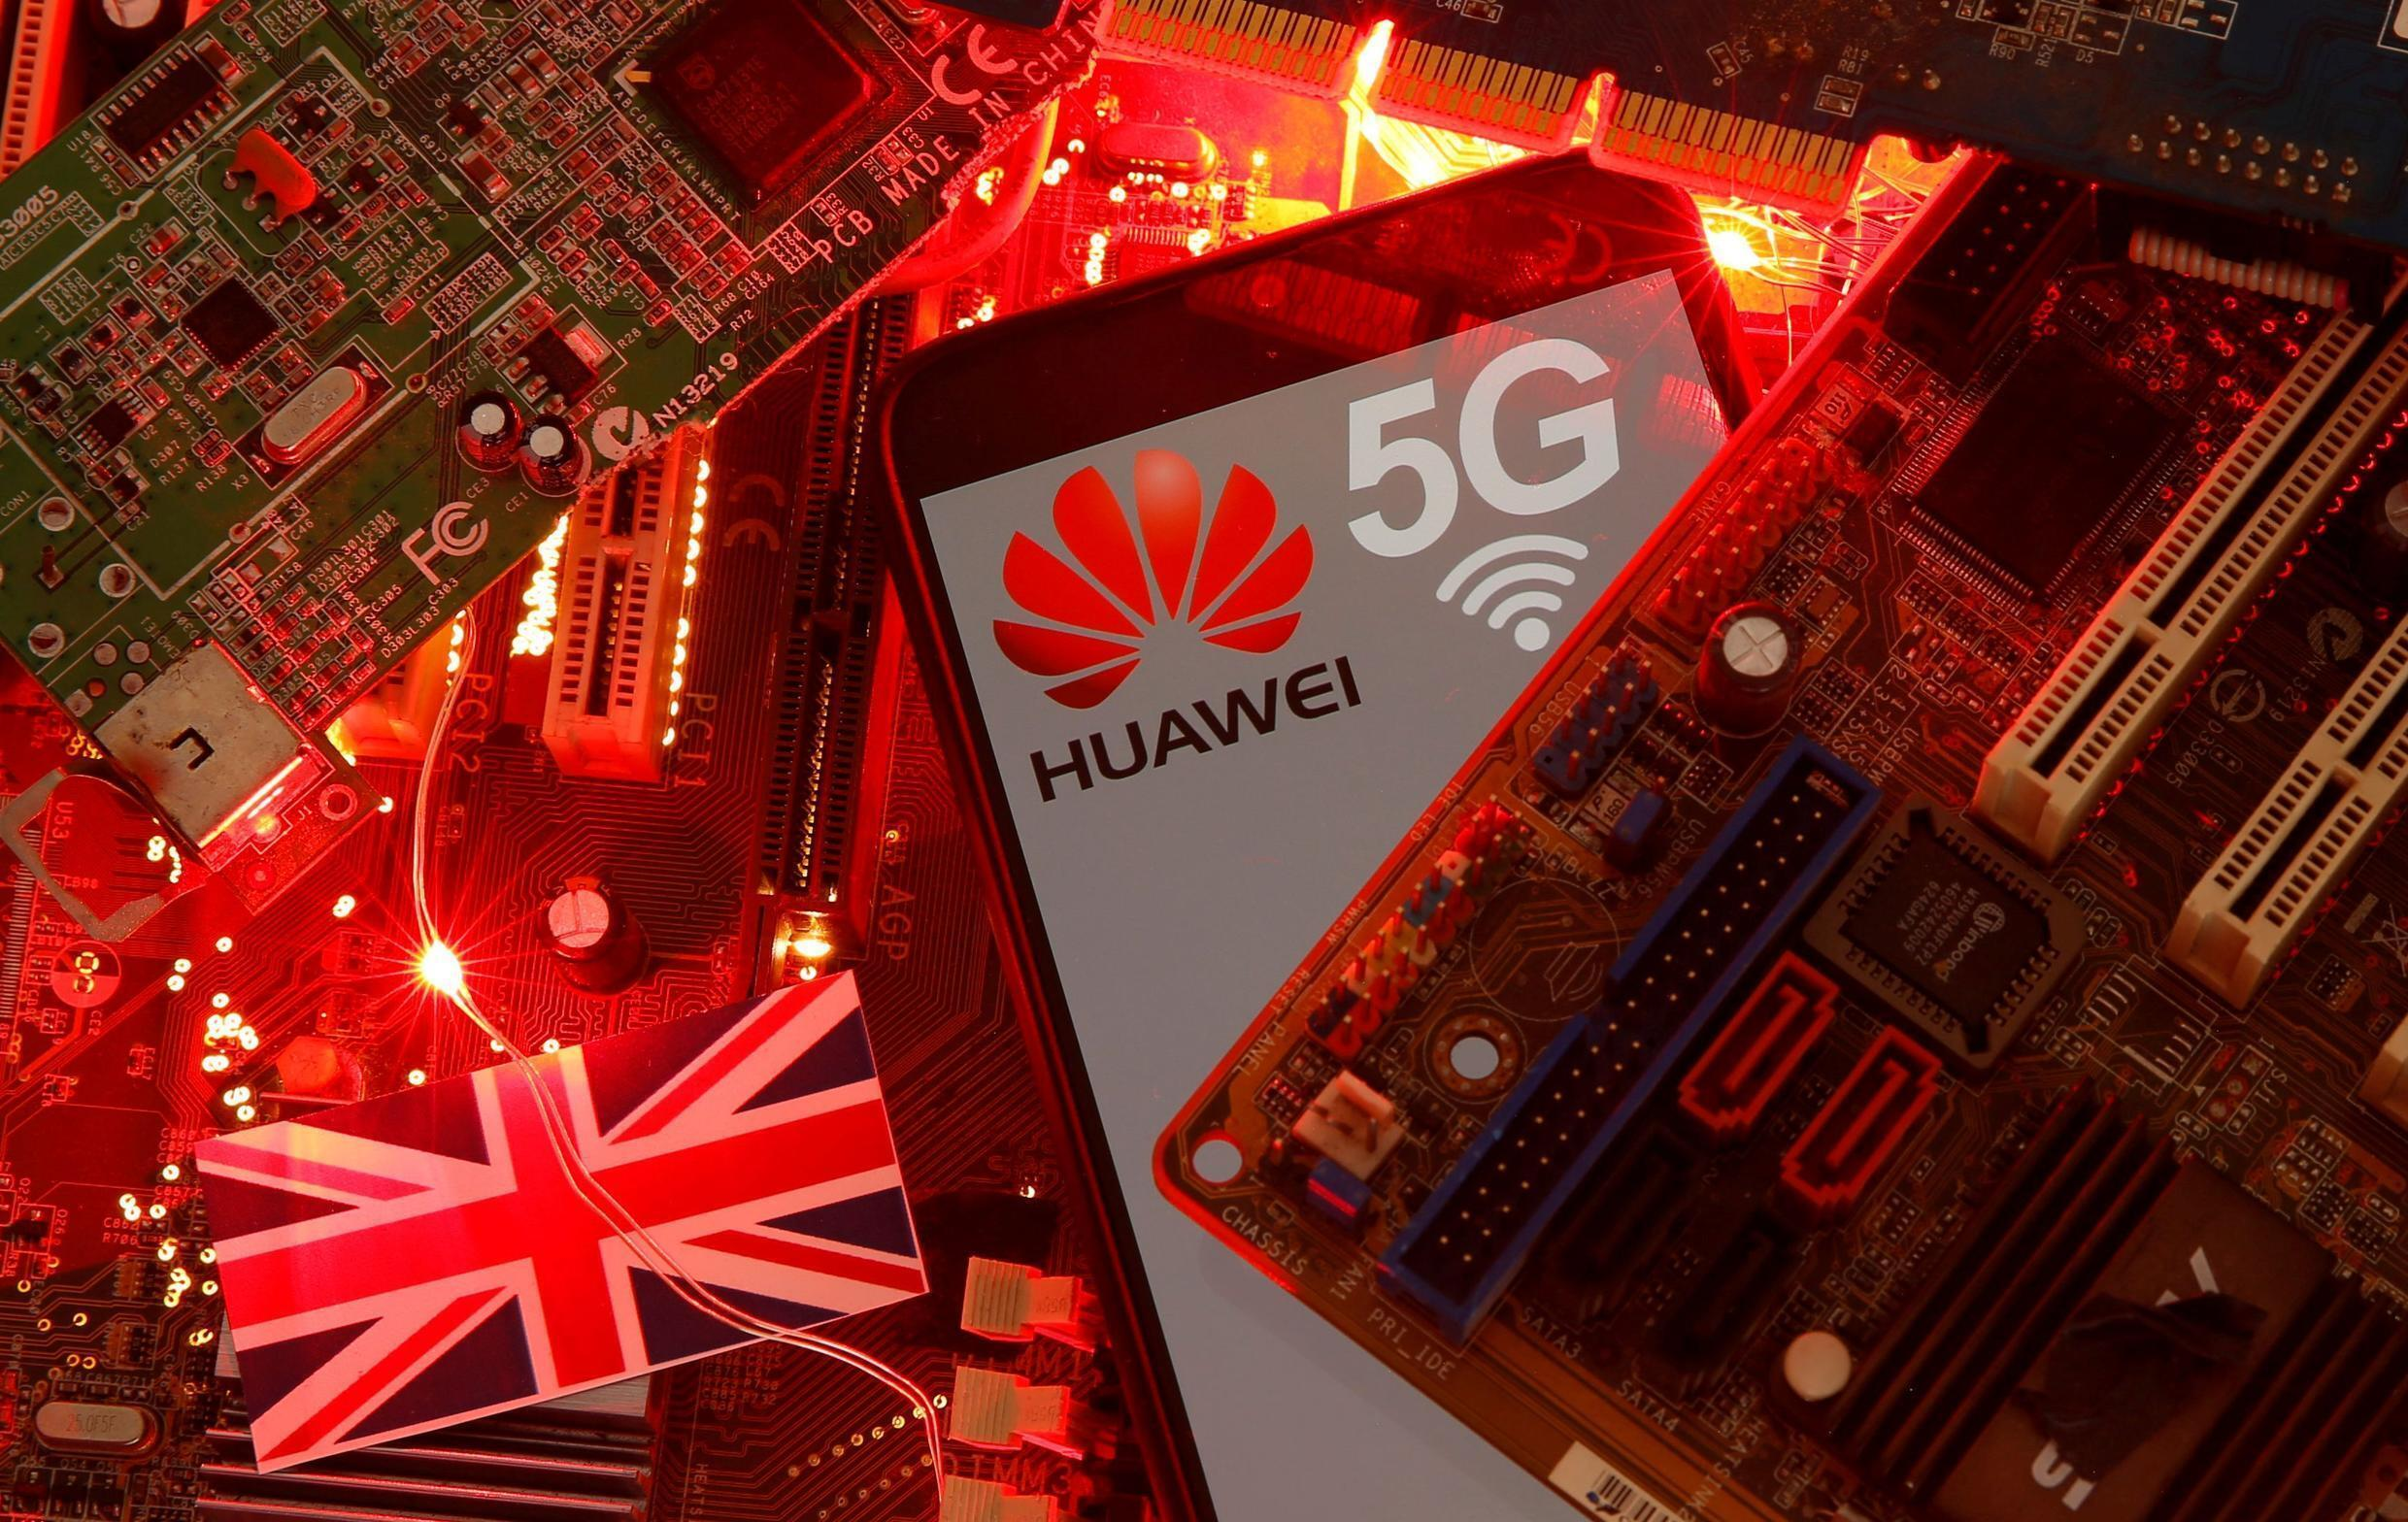 The UK has backtracked on the decision to let Huawei play a role in the construction of its 5G networks due to security concerns.